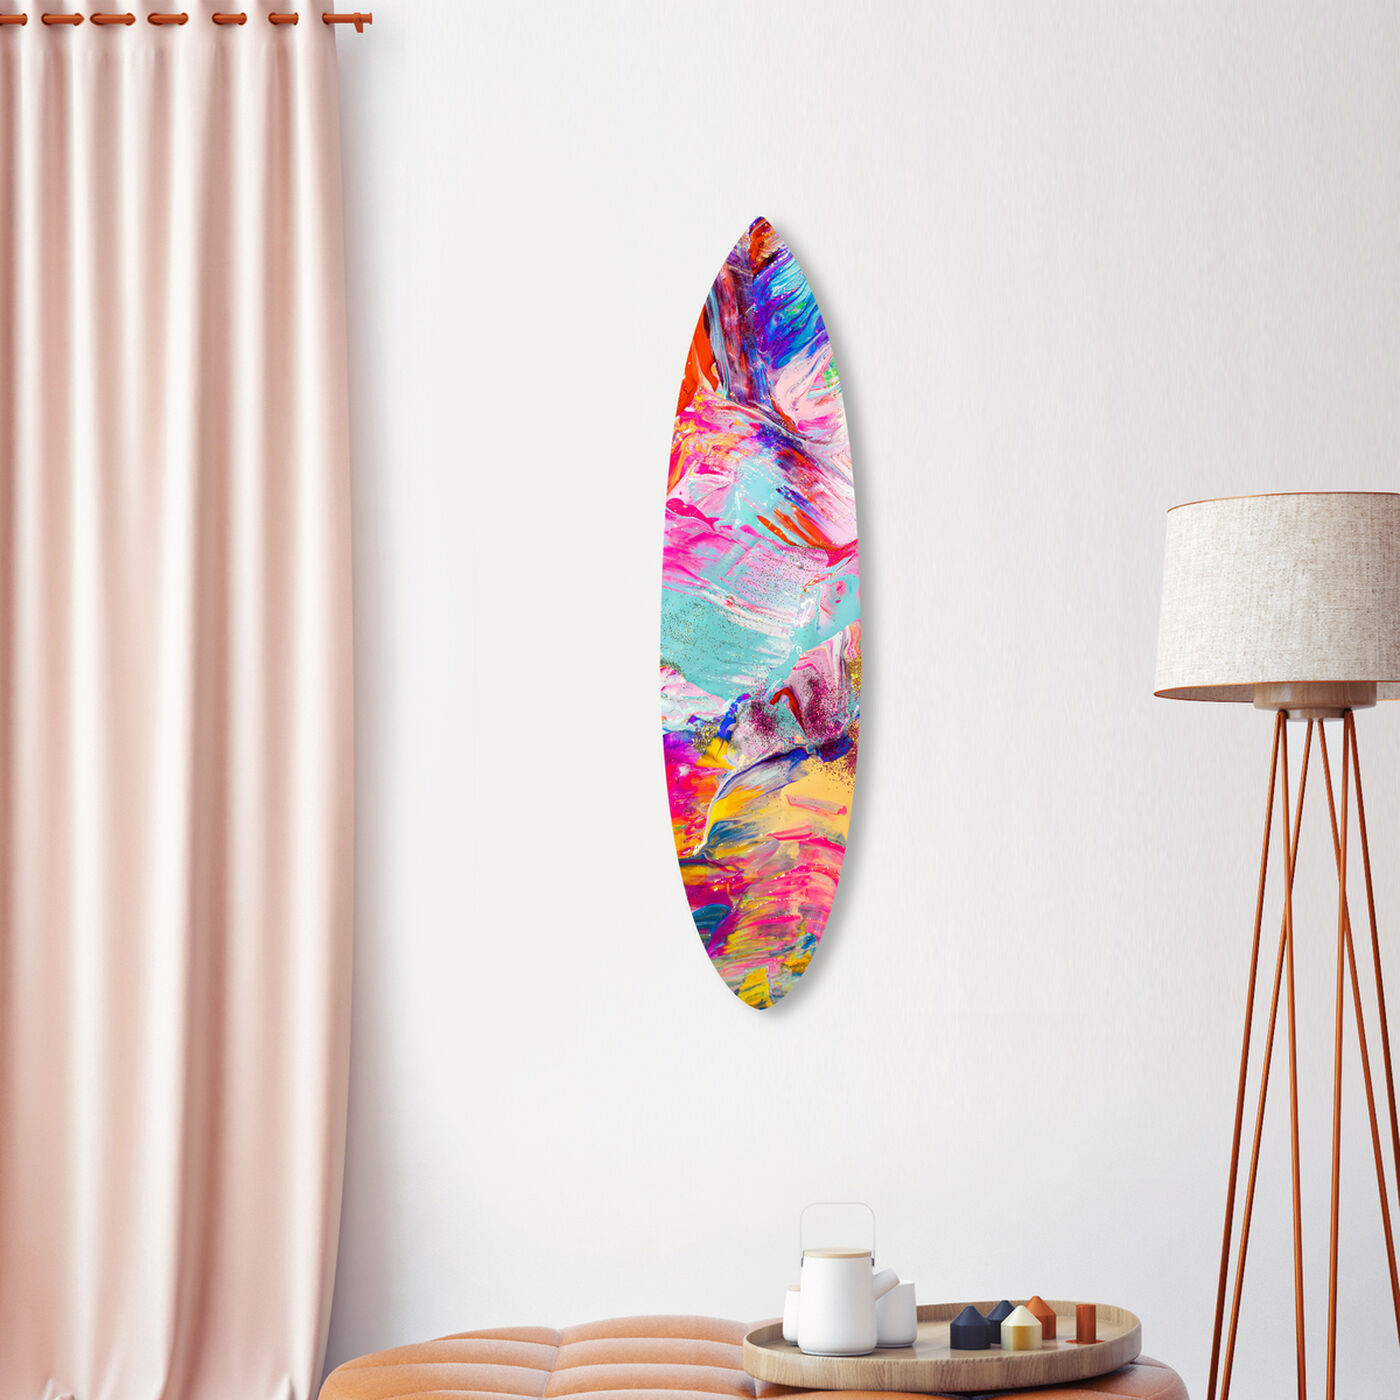 Bright Neon Love Surfboard Flat